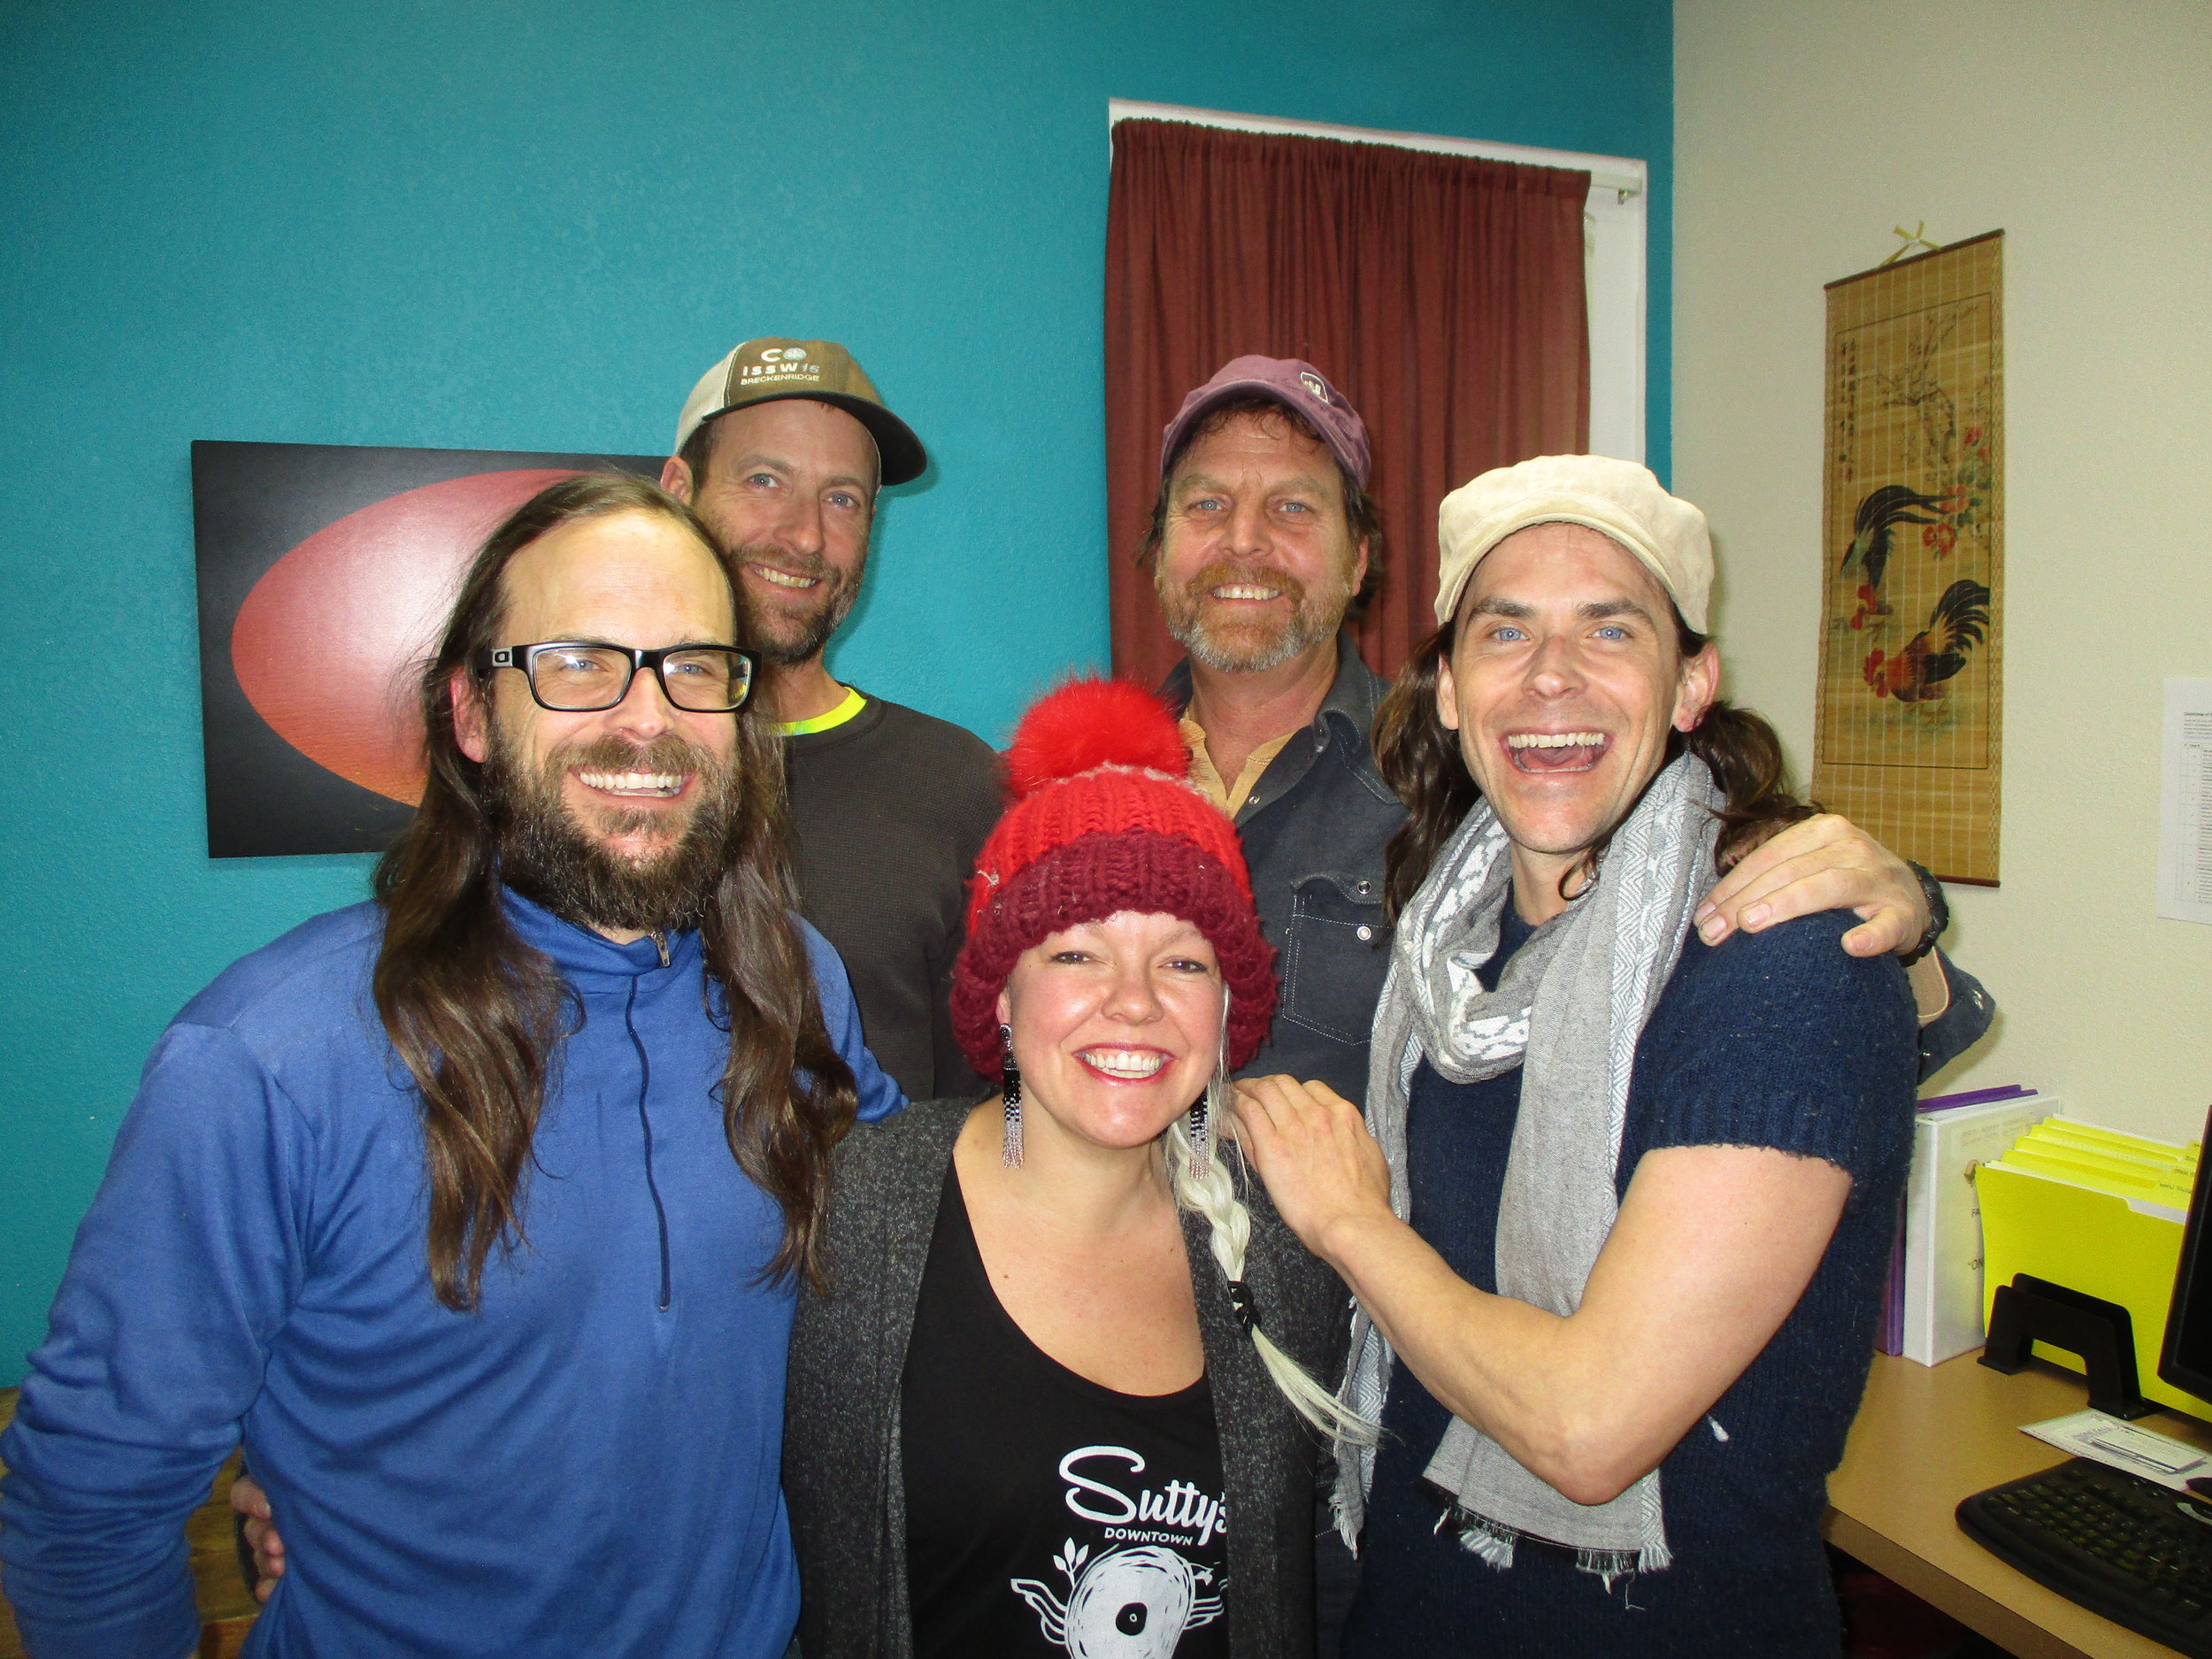 Pictured from left: George Mossman, Aaron Robbins, Lindsay Sutton-Stephens, Bones, Peter Mossman